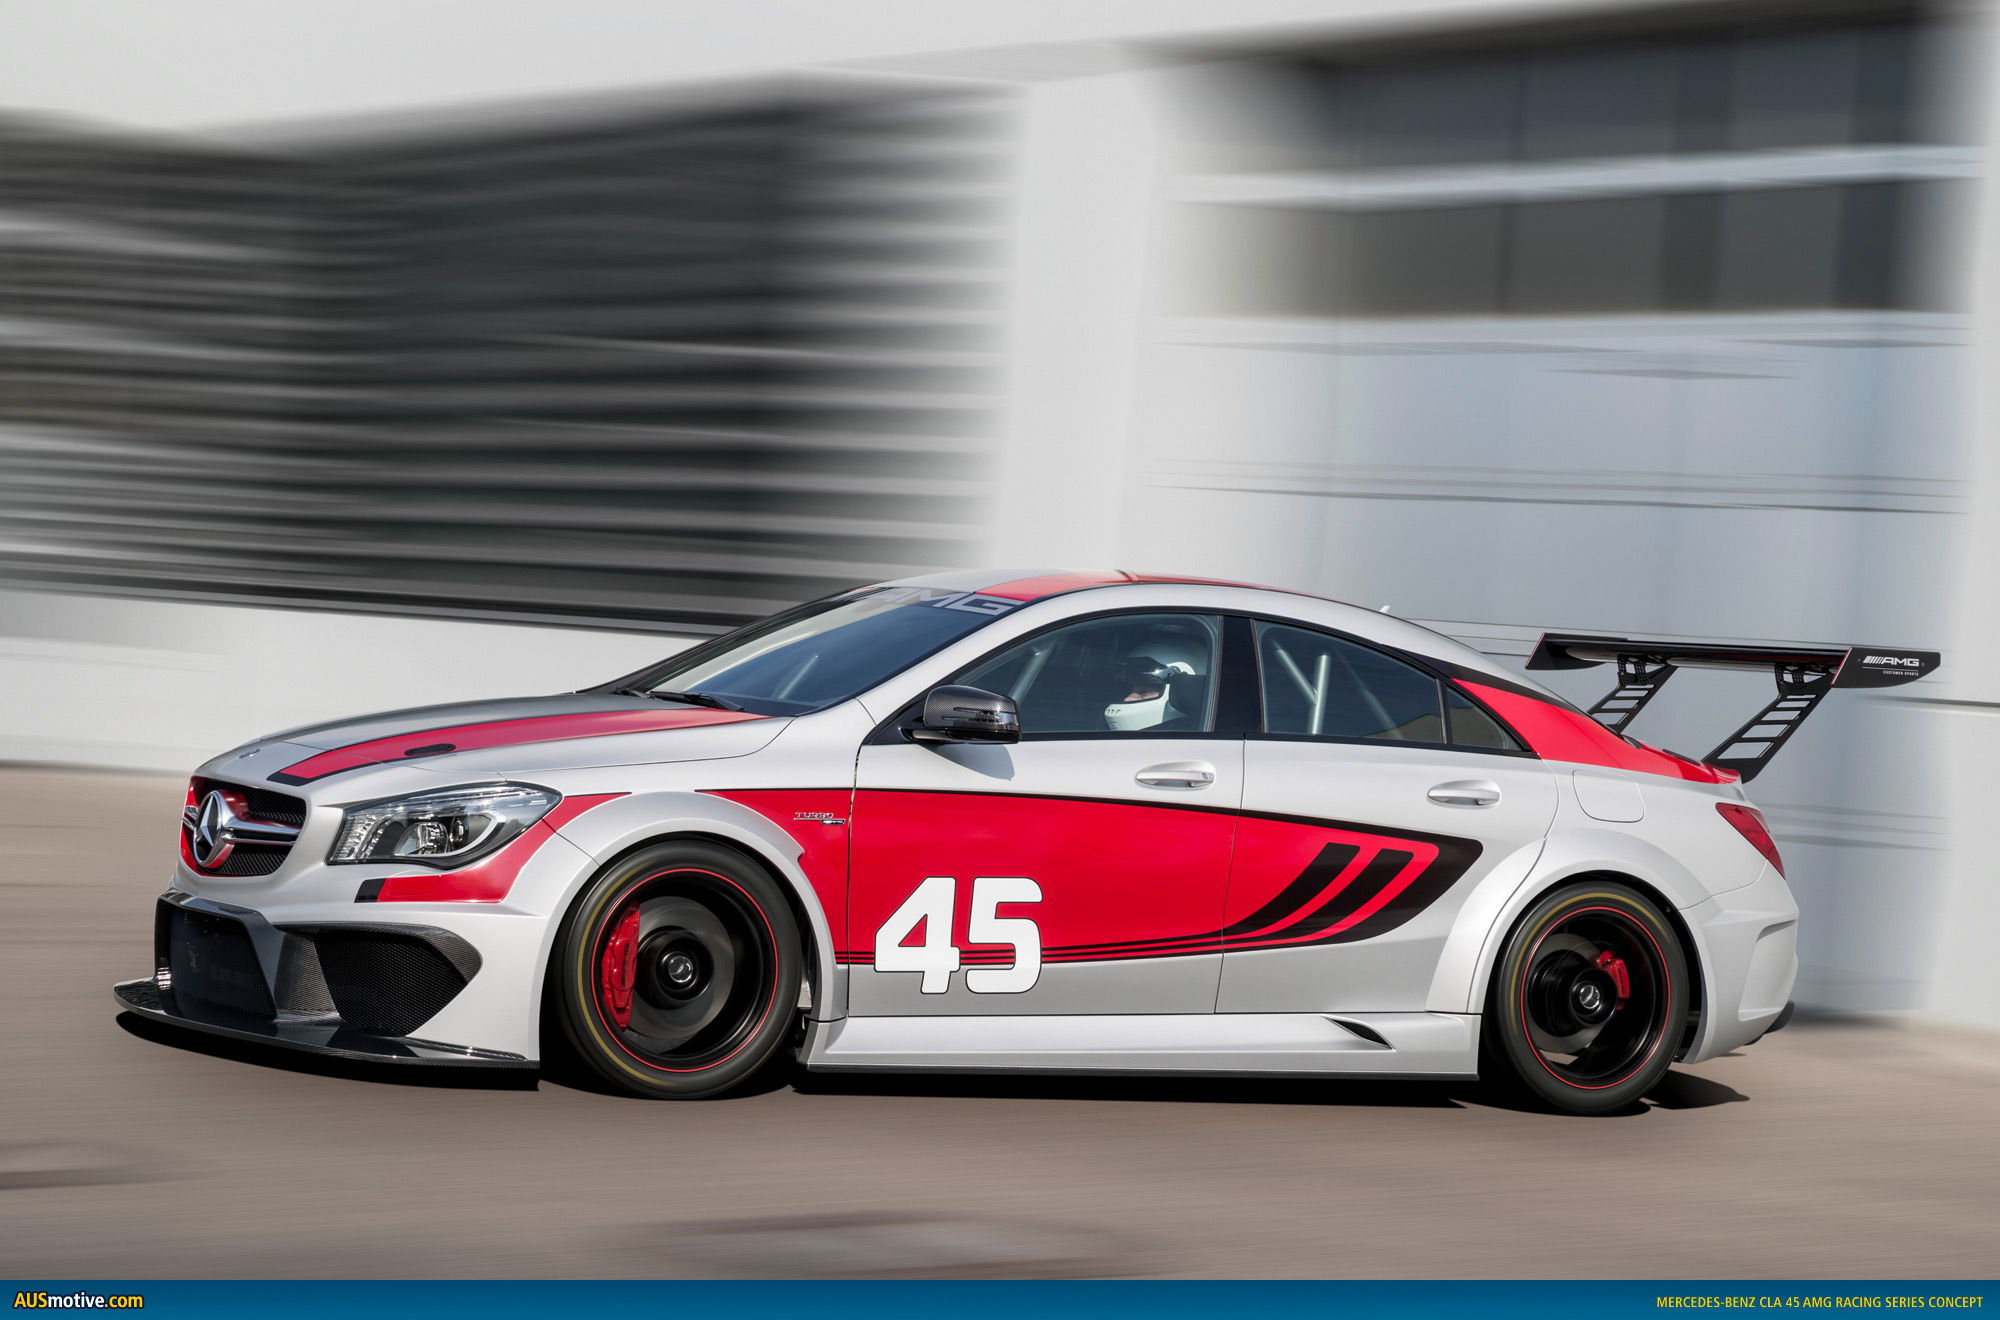 mercedes cla 45 amg racing series concept revealed. Black Bedroom Furniture Sets. Home Design Ideas